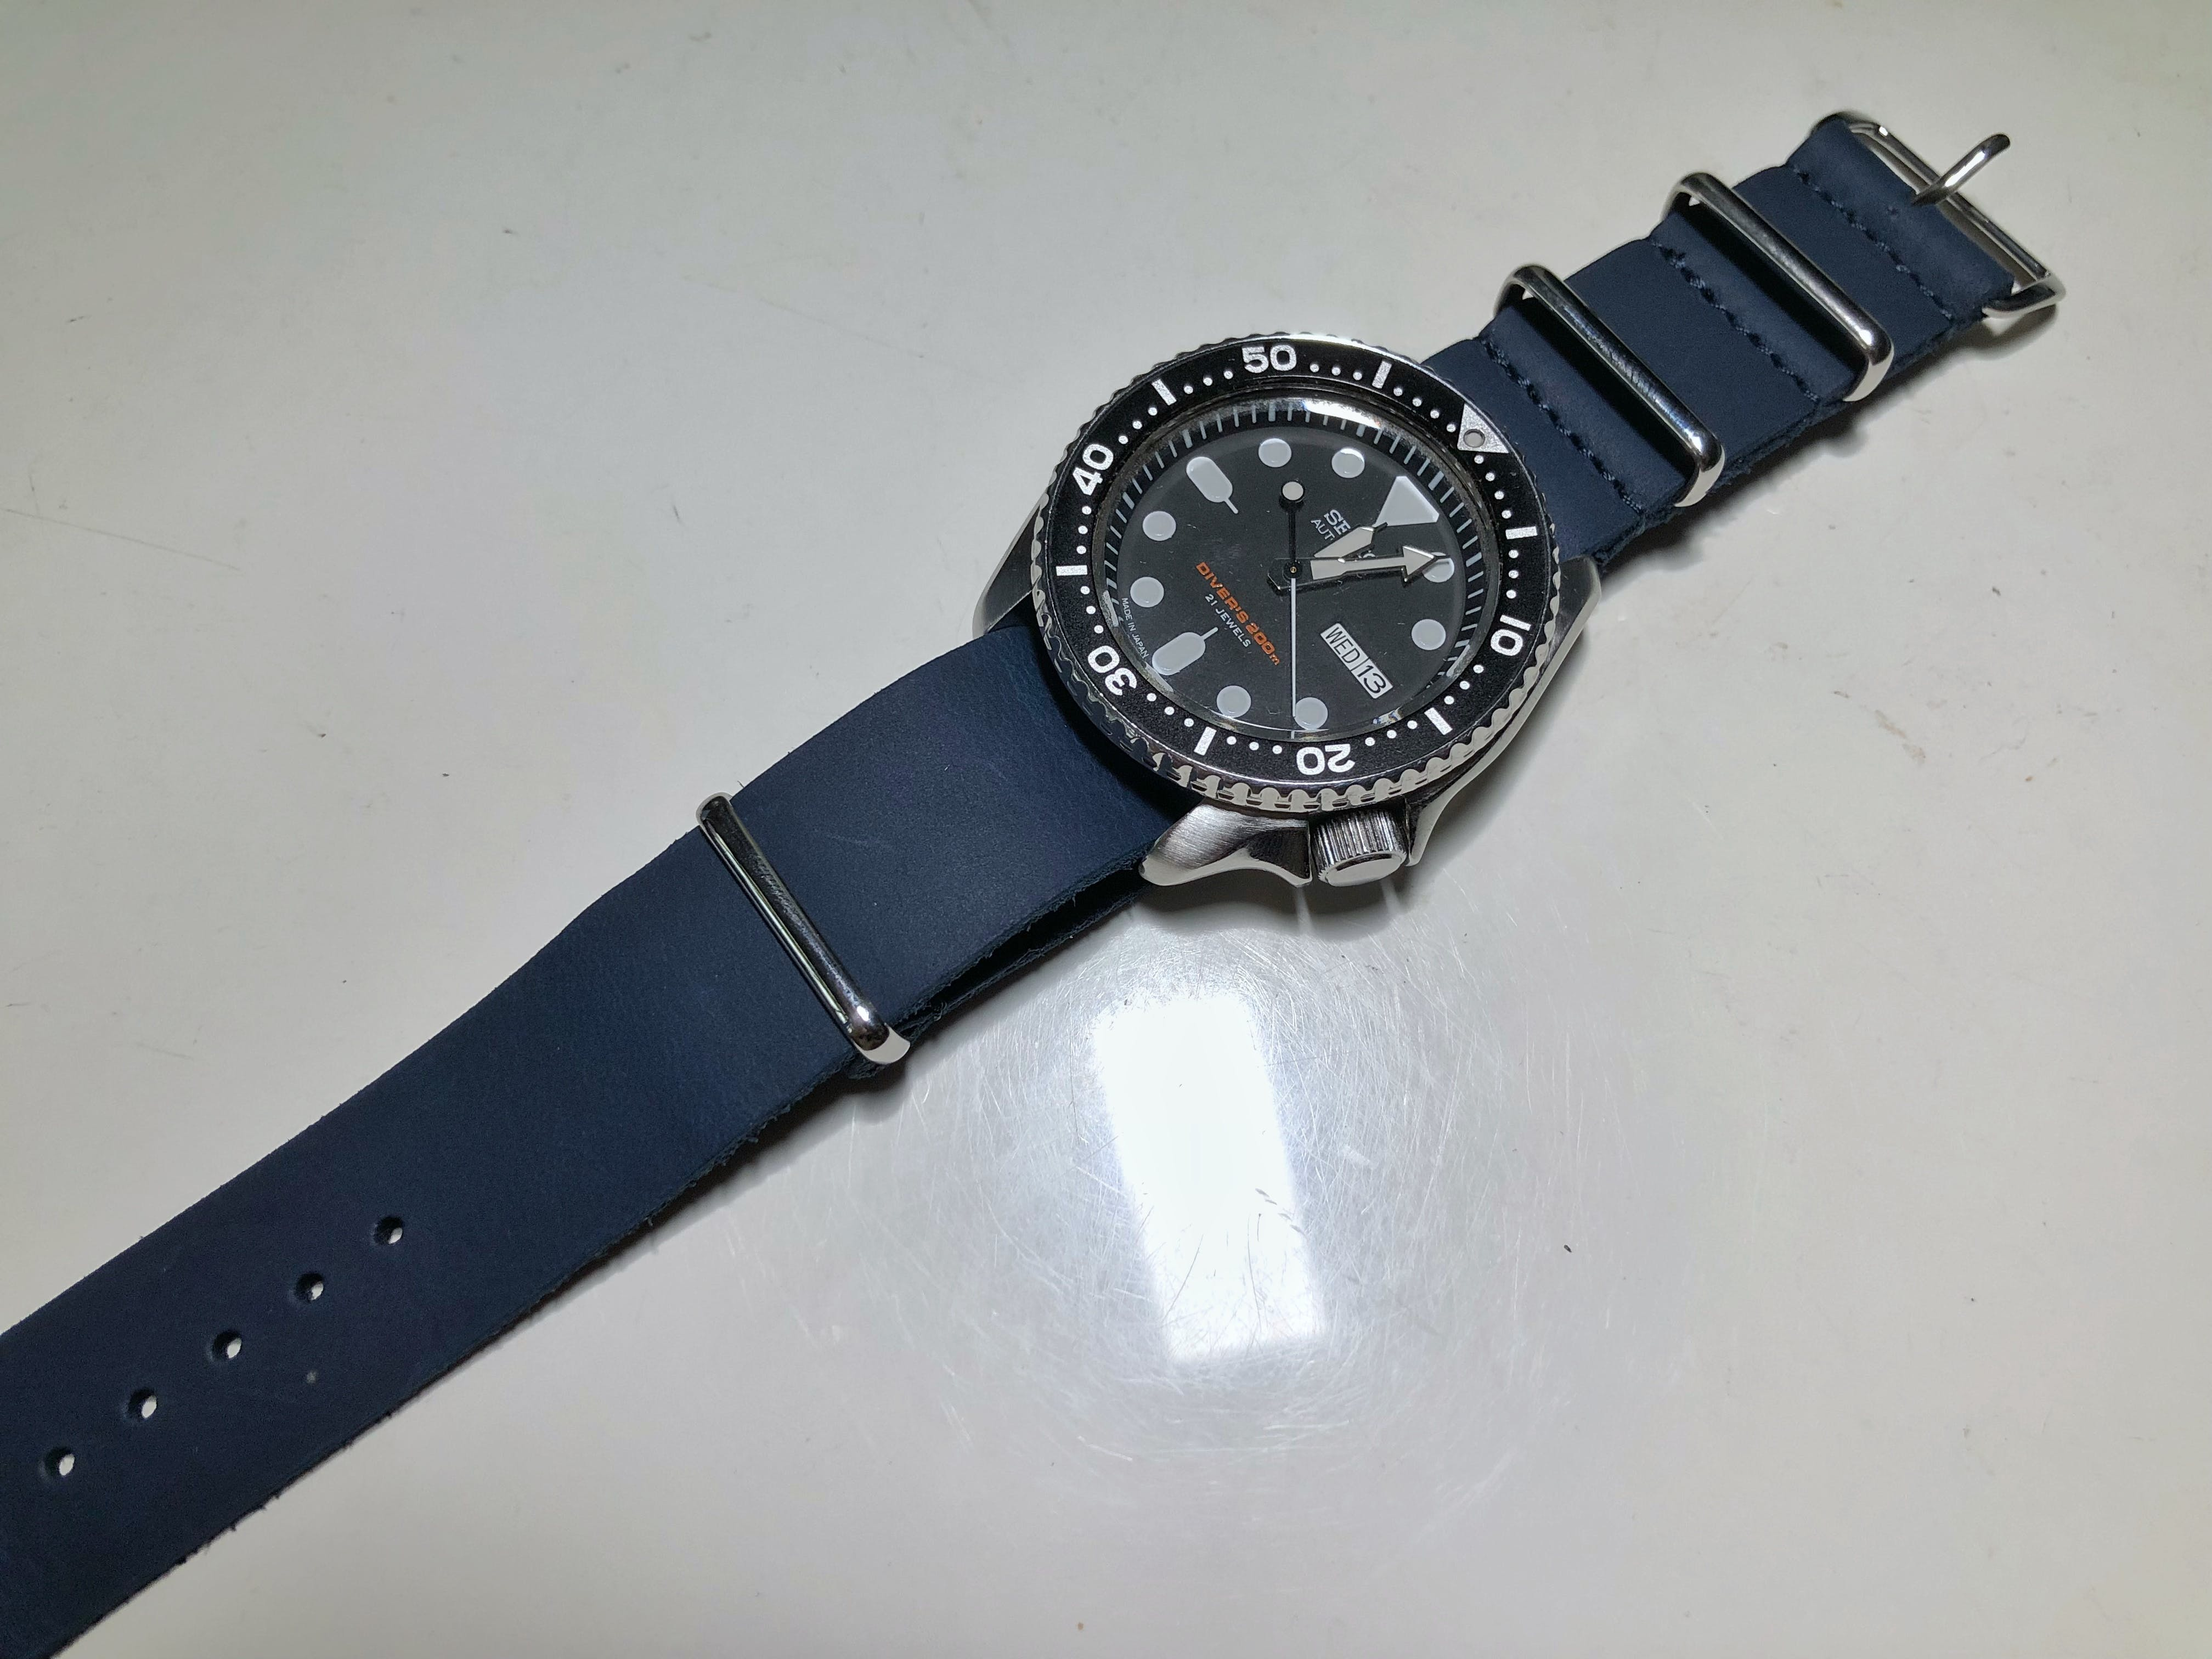 f4cb5869c58 ... time cheap leather straps are what they are – cheap. The blue leather  Nato is really well made